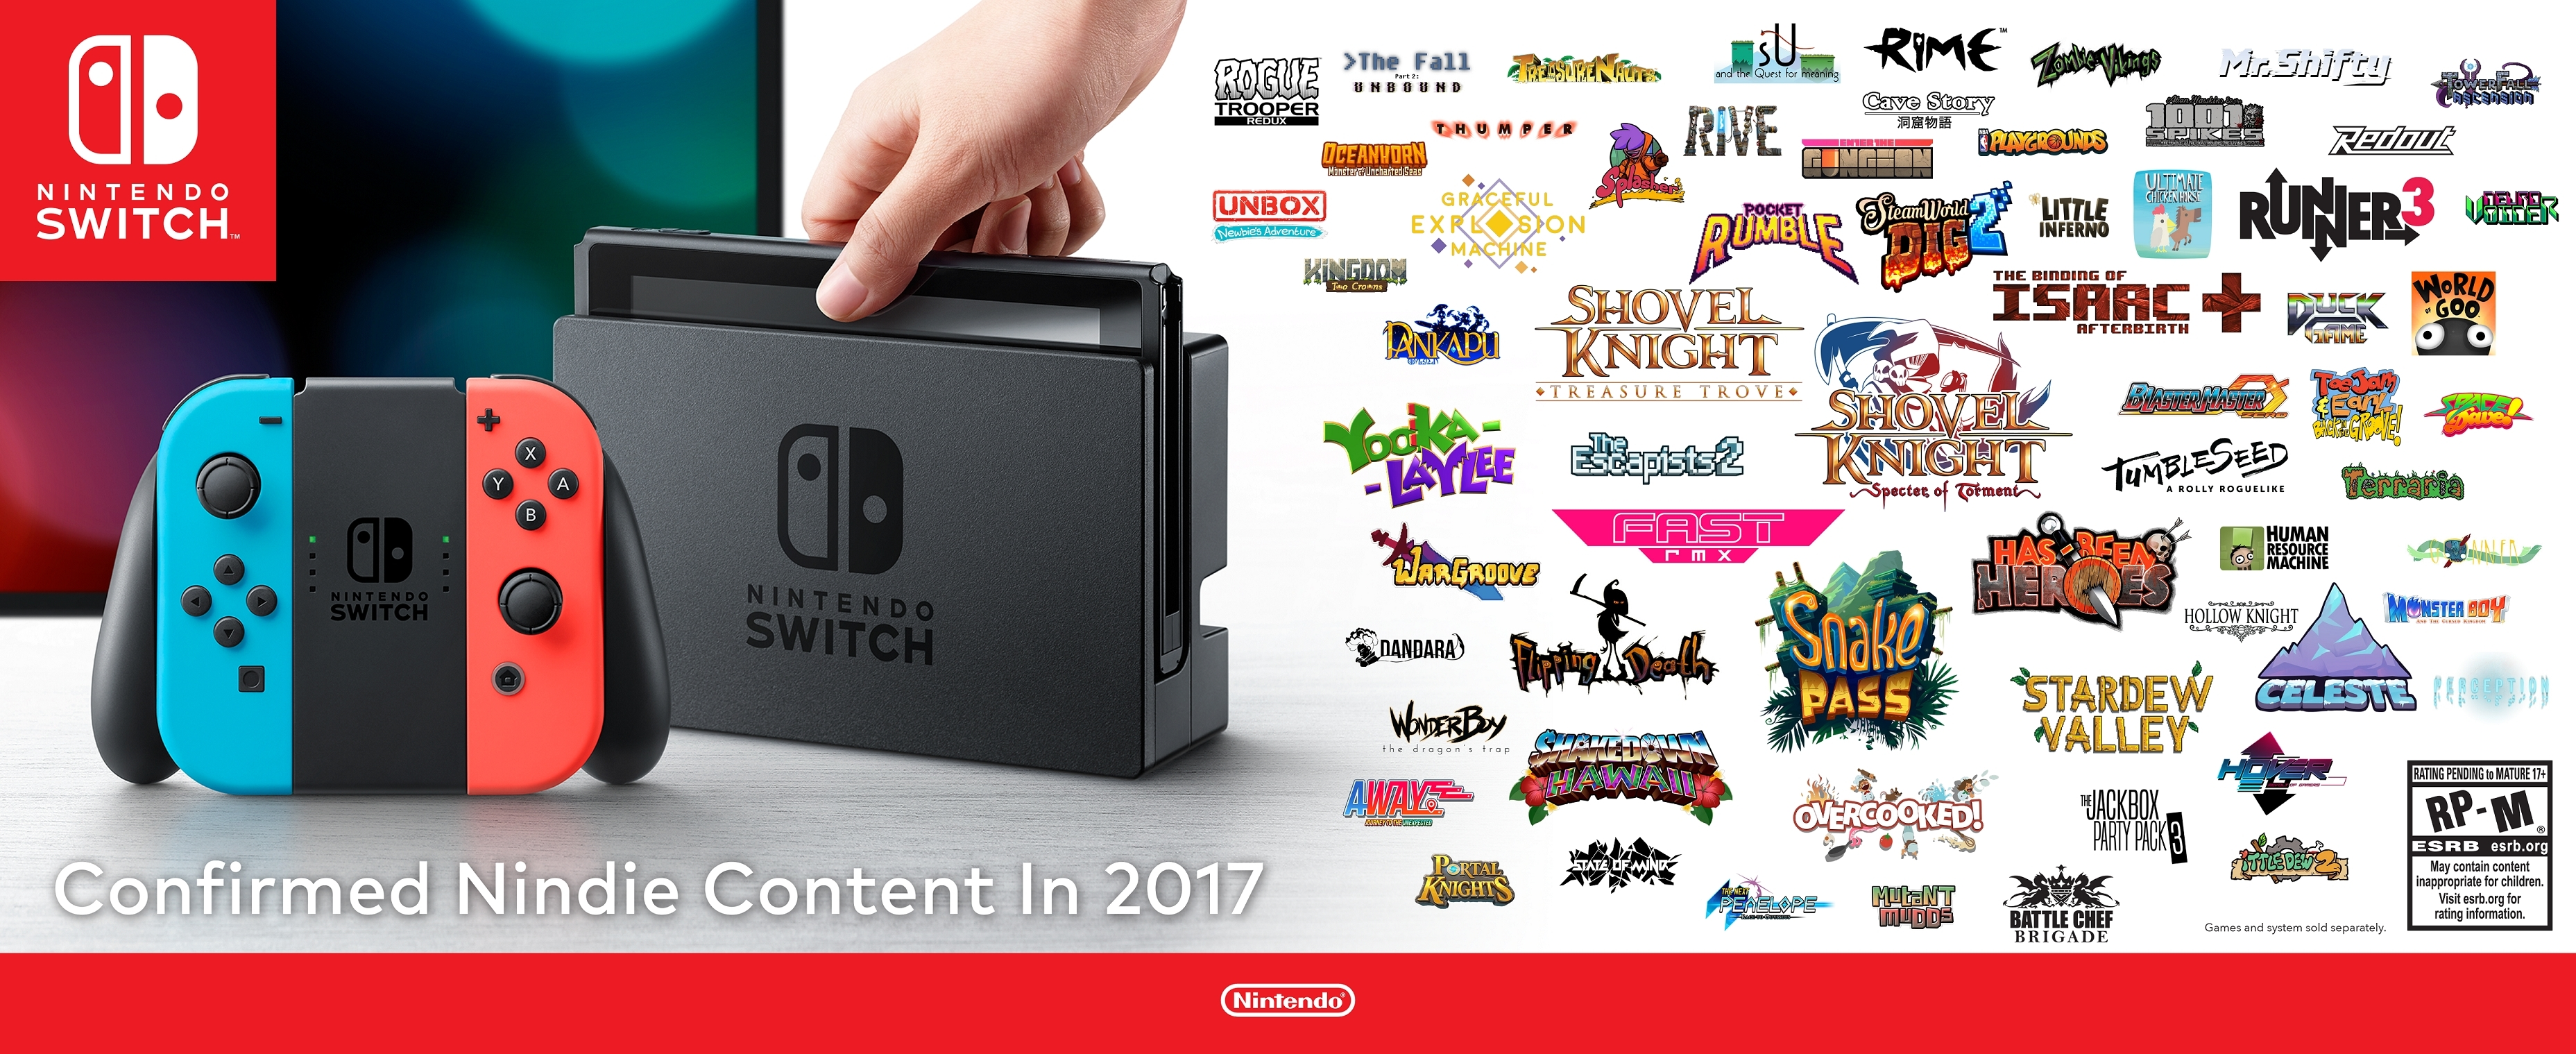 More than 60 quality indie games are confirmed for Nintendo Switch this year alone, and many games take advantage of unique Nintendo Switch features. (Photo: Business Wire)